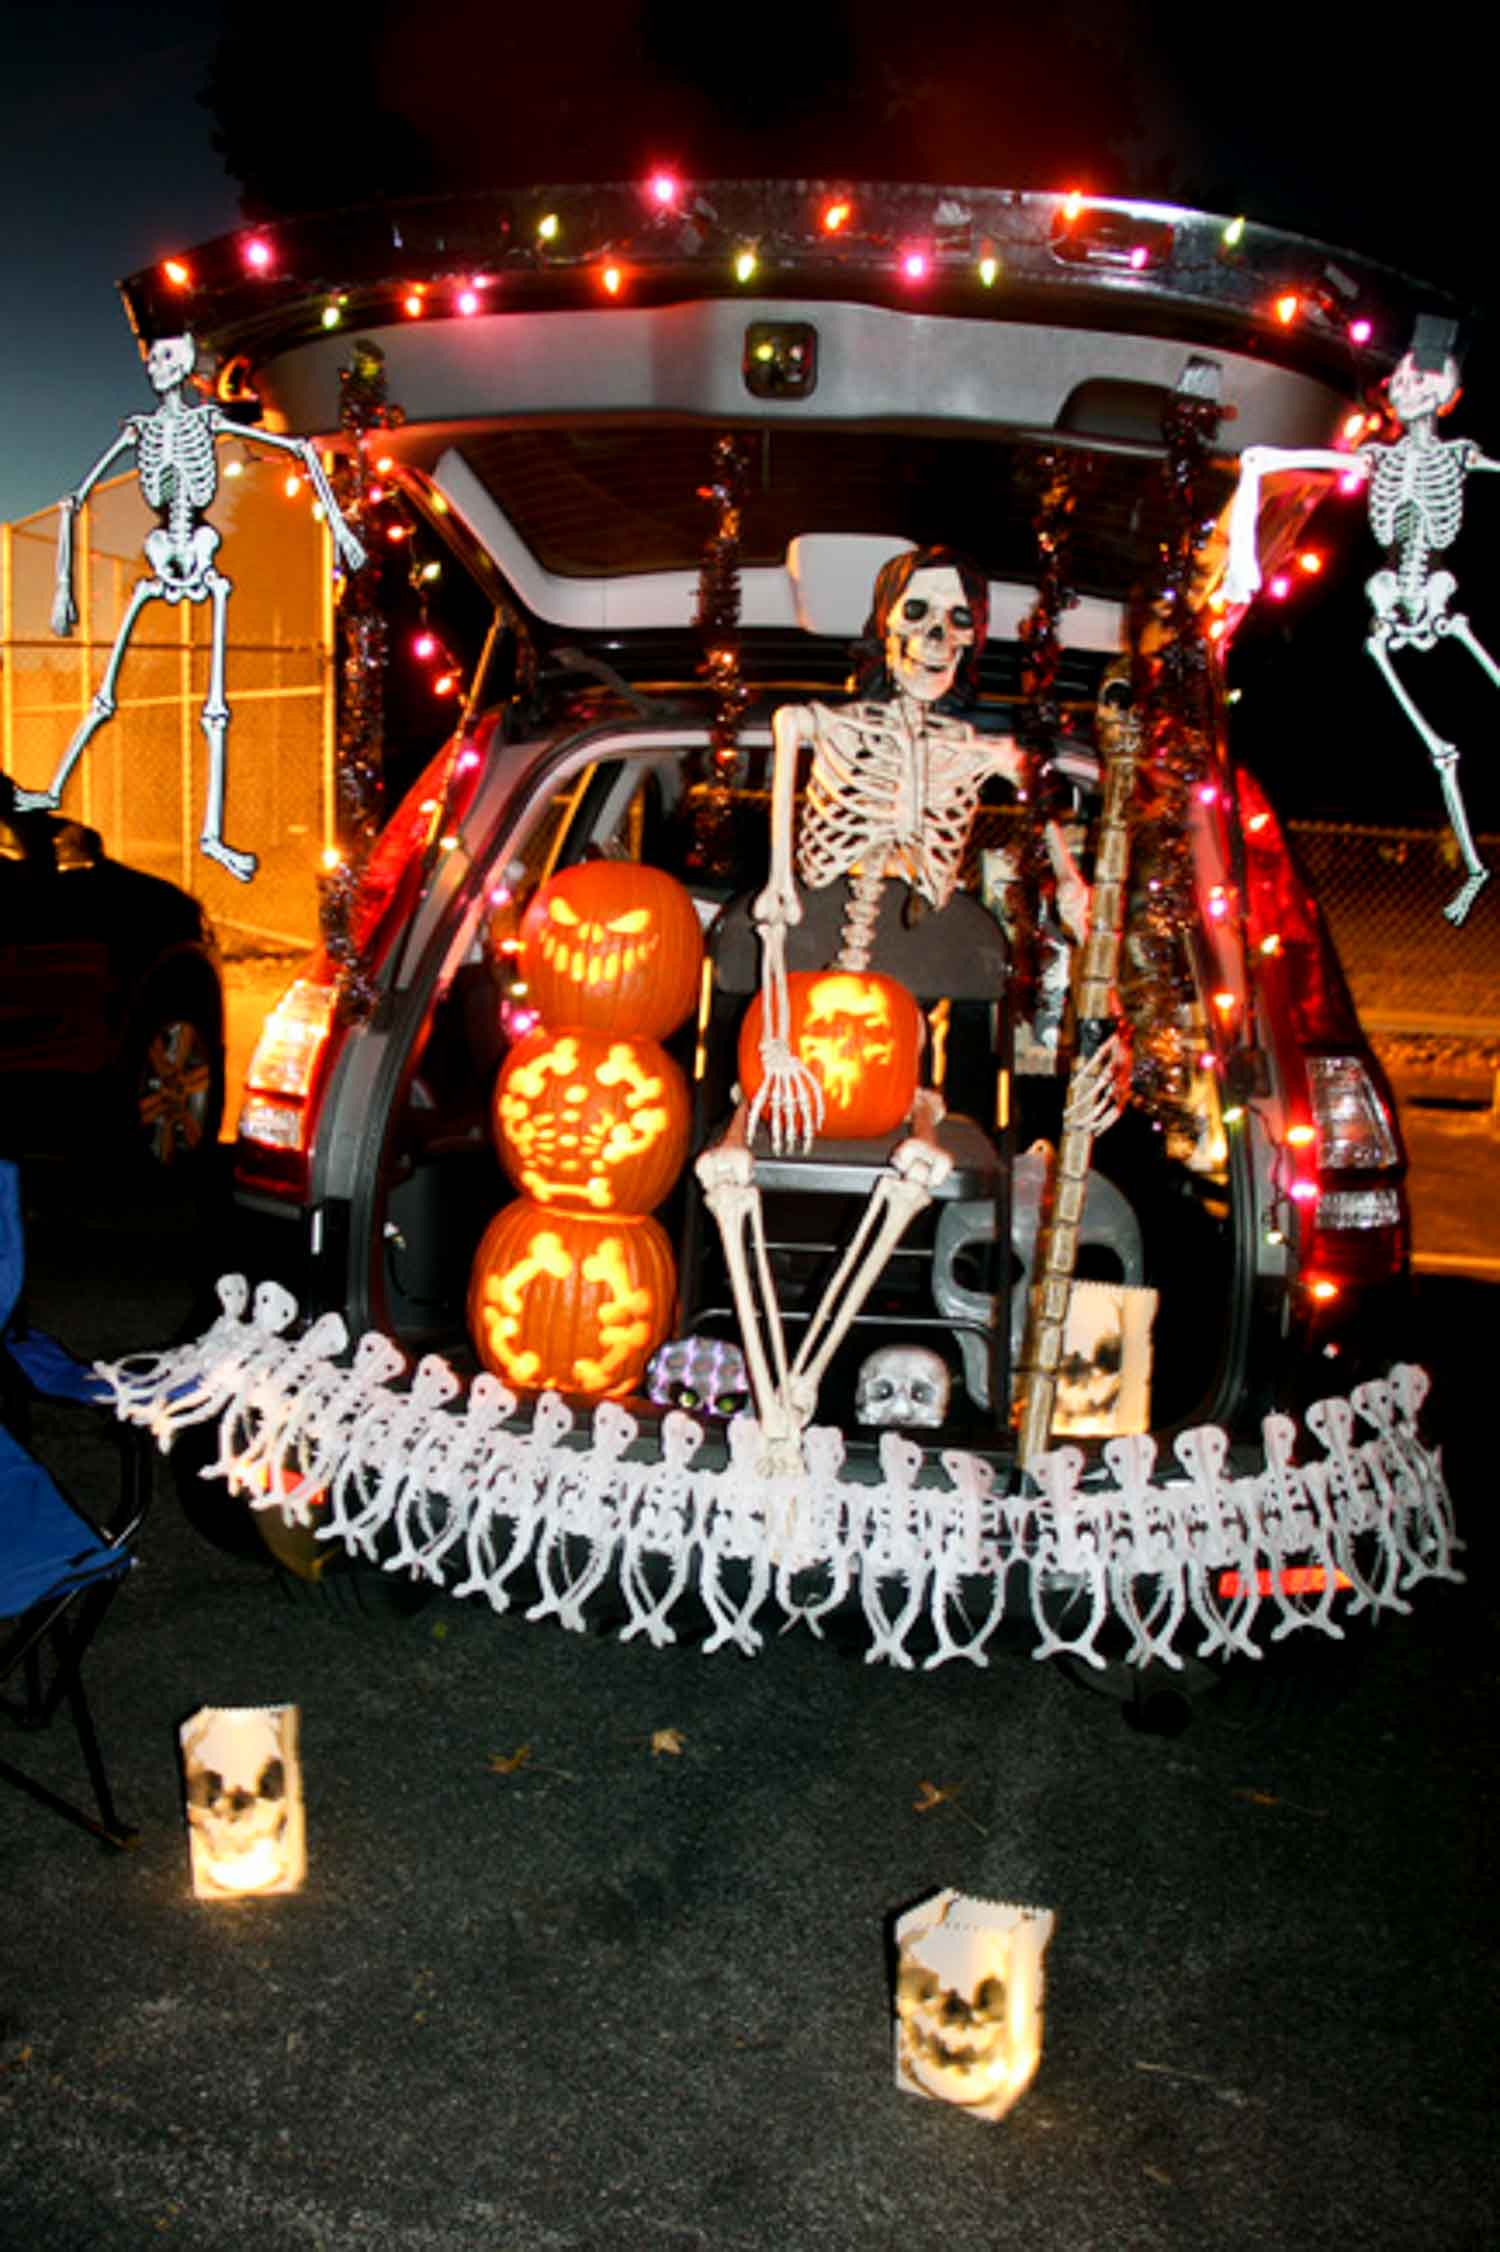 A trunk decorated with skeletons, pumpkins and lights for a spooky Halloween night.